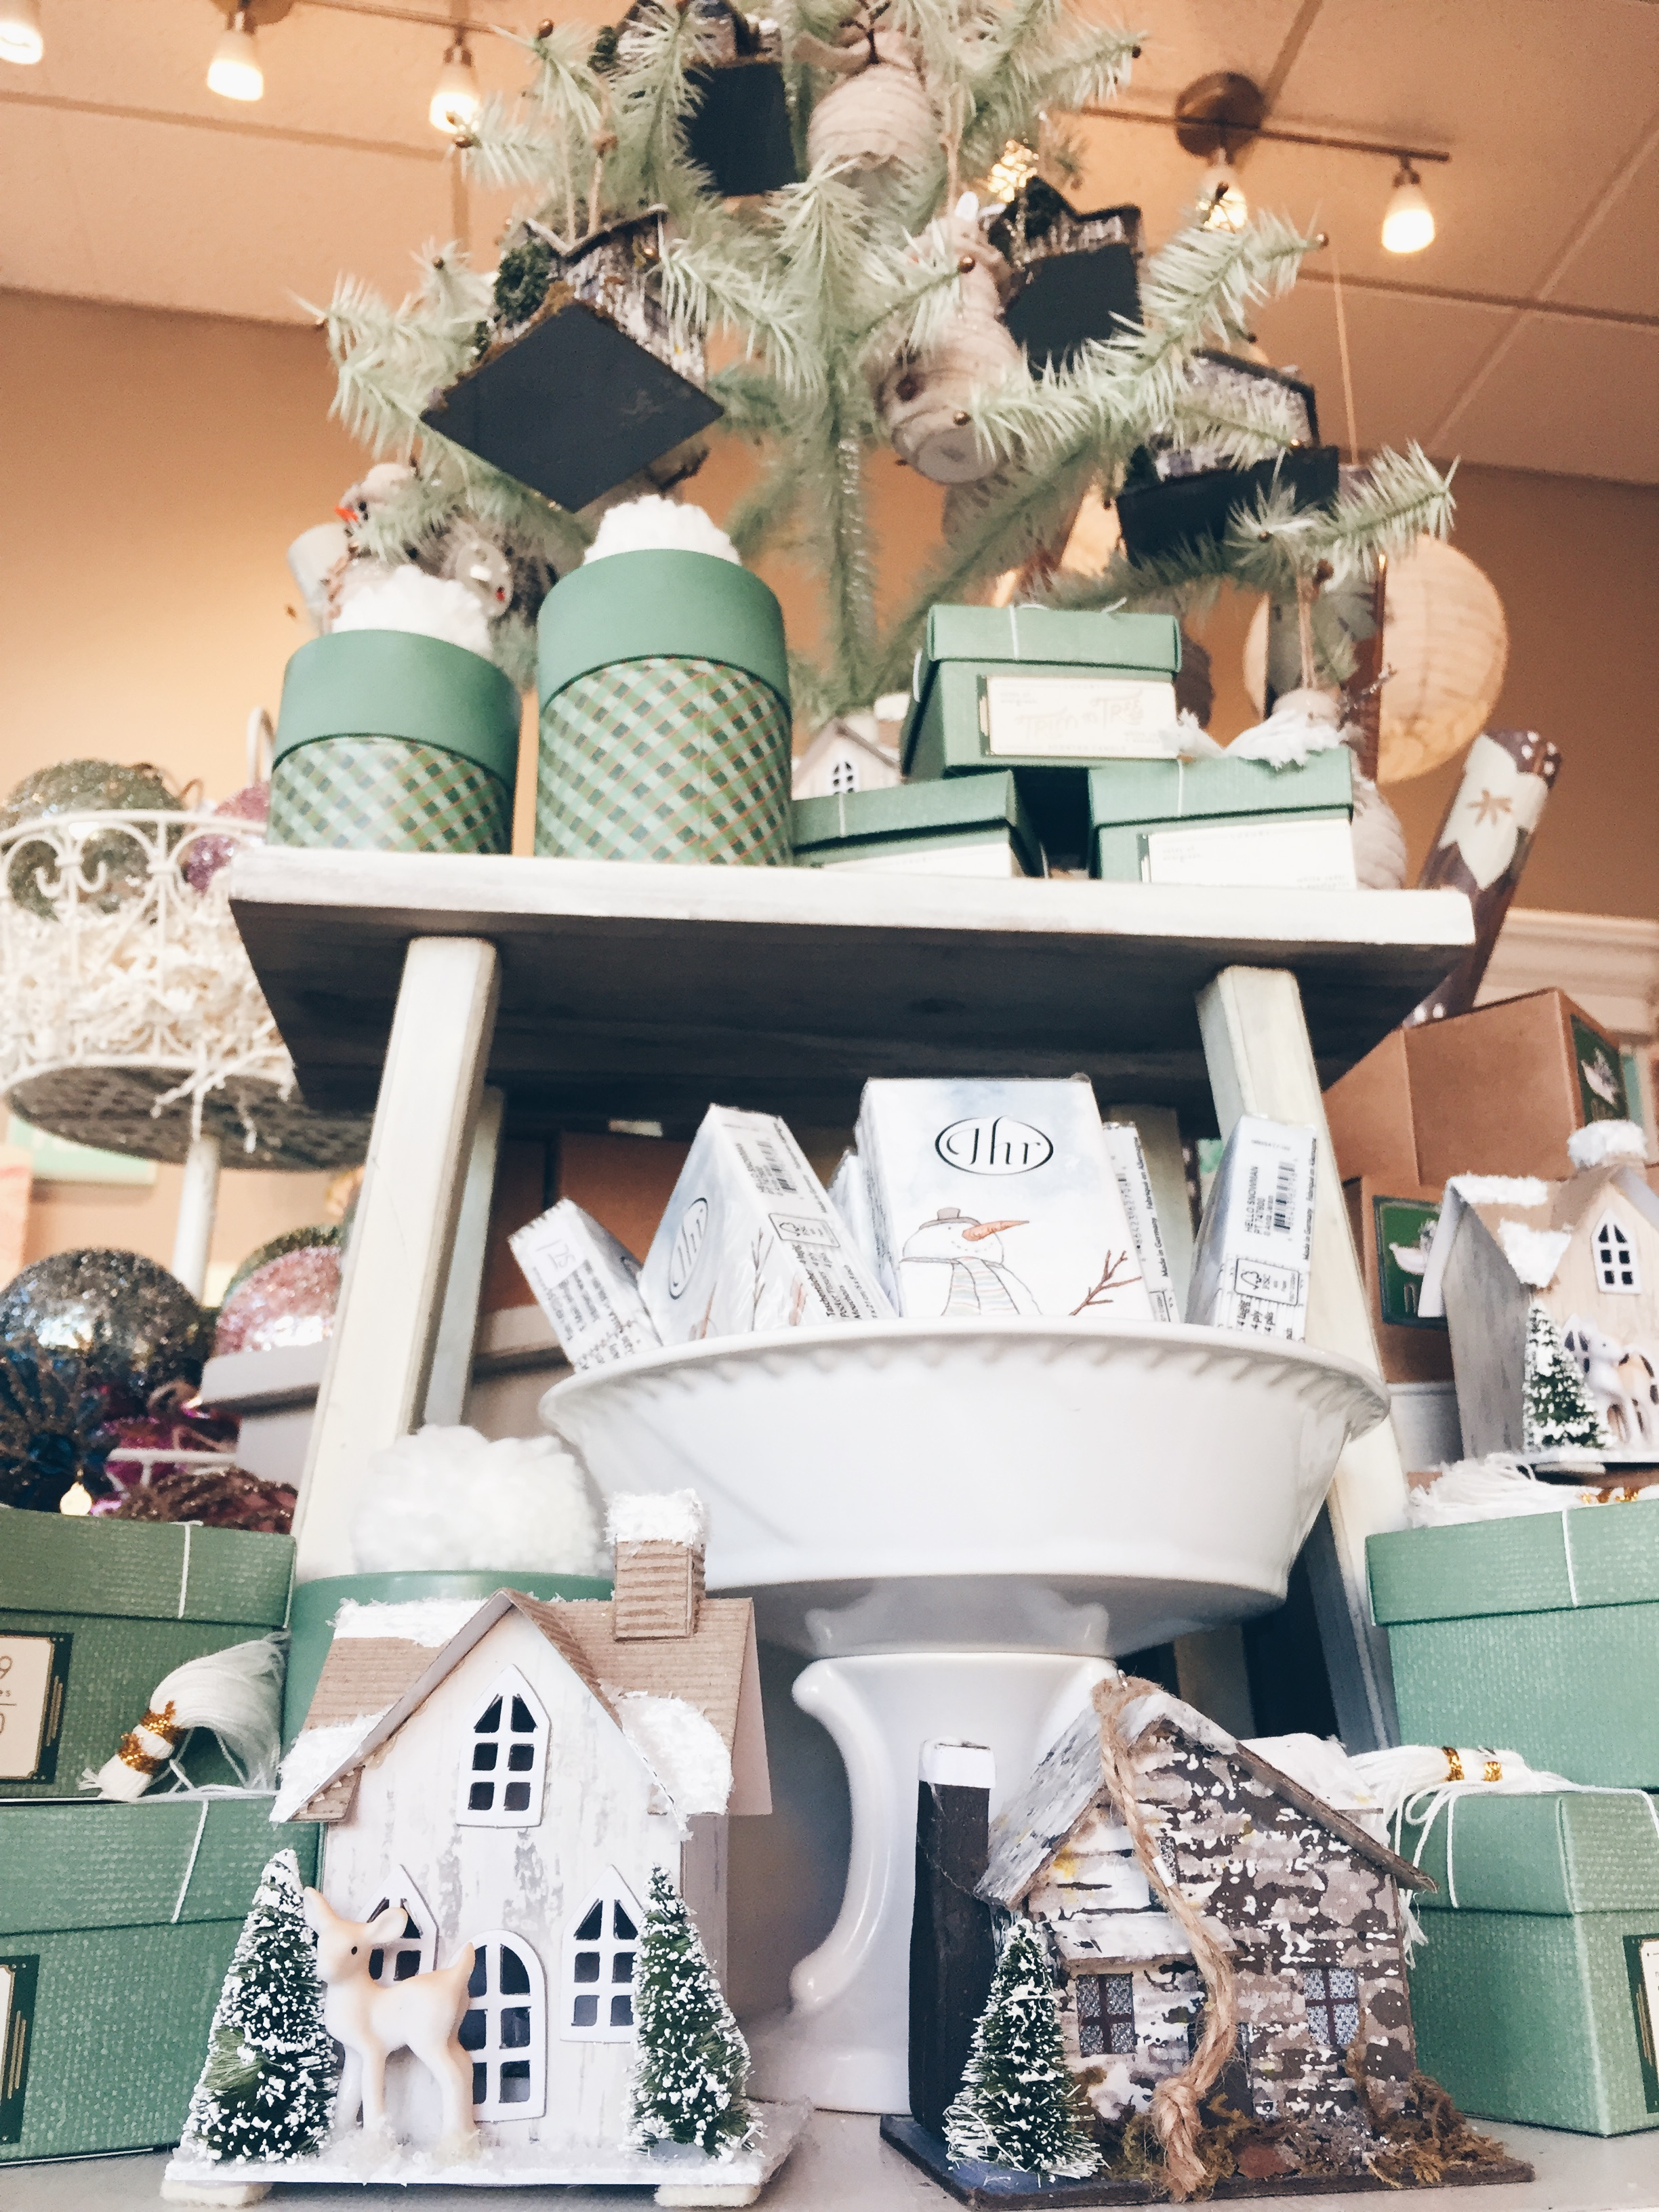 Holiday gifts- adorable ornaments, candles, and more!